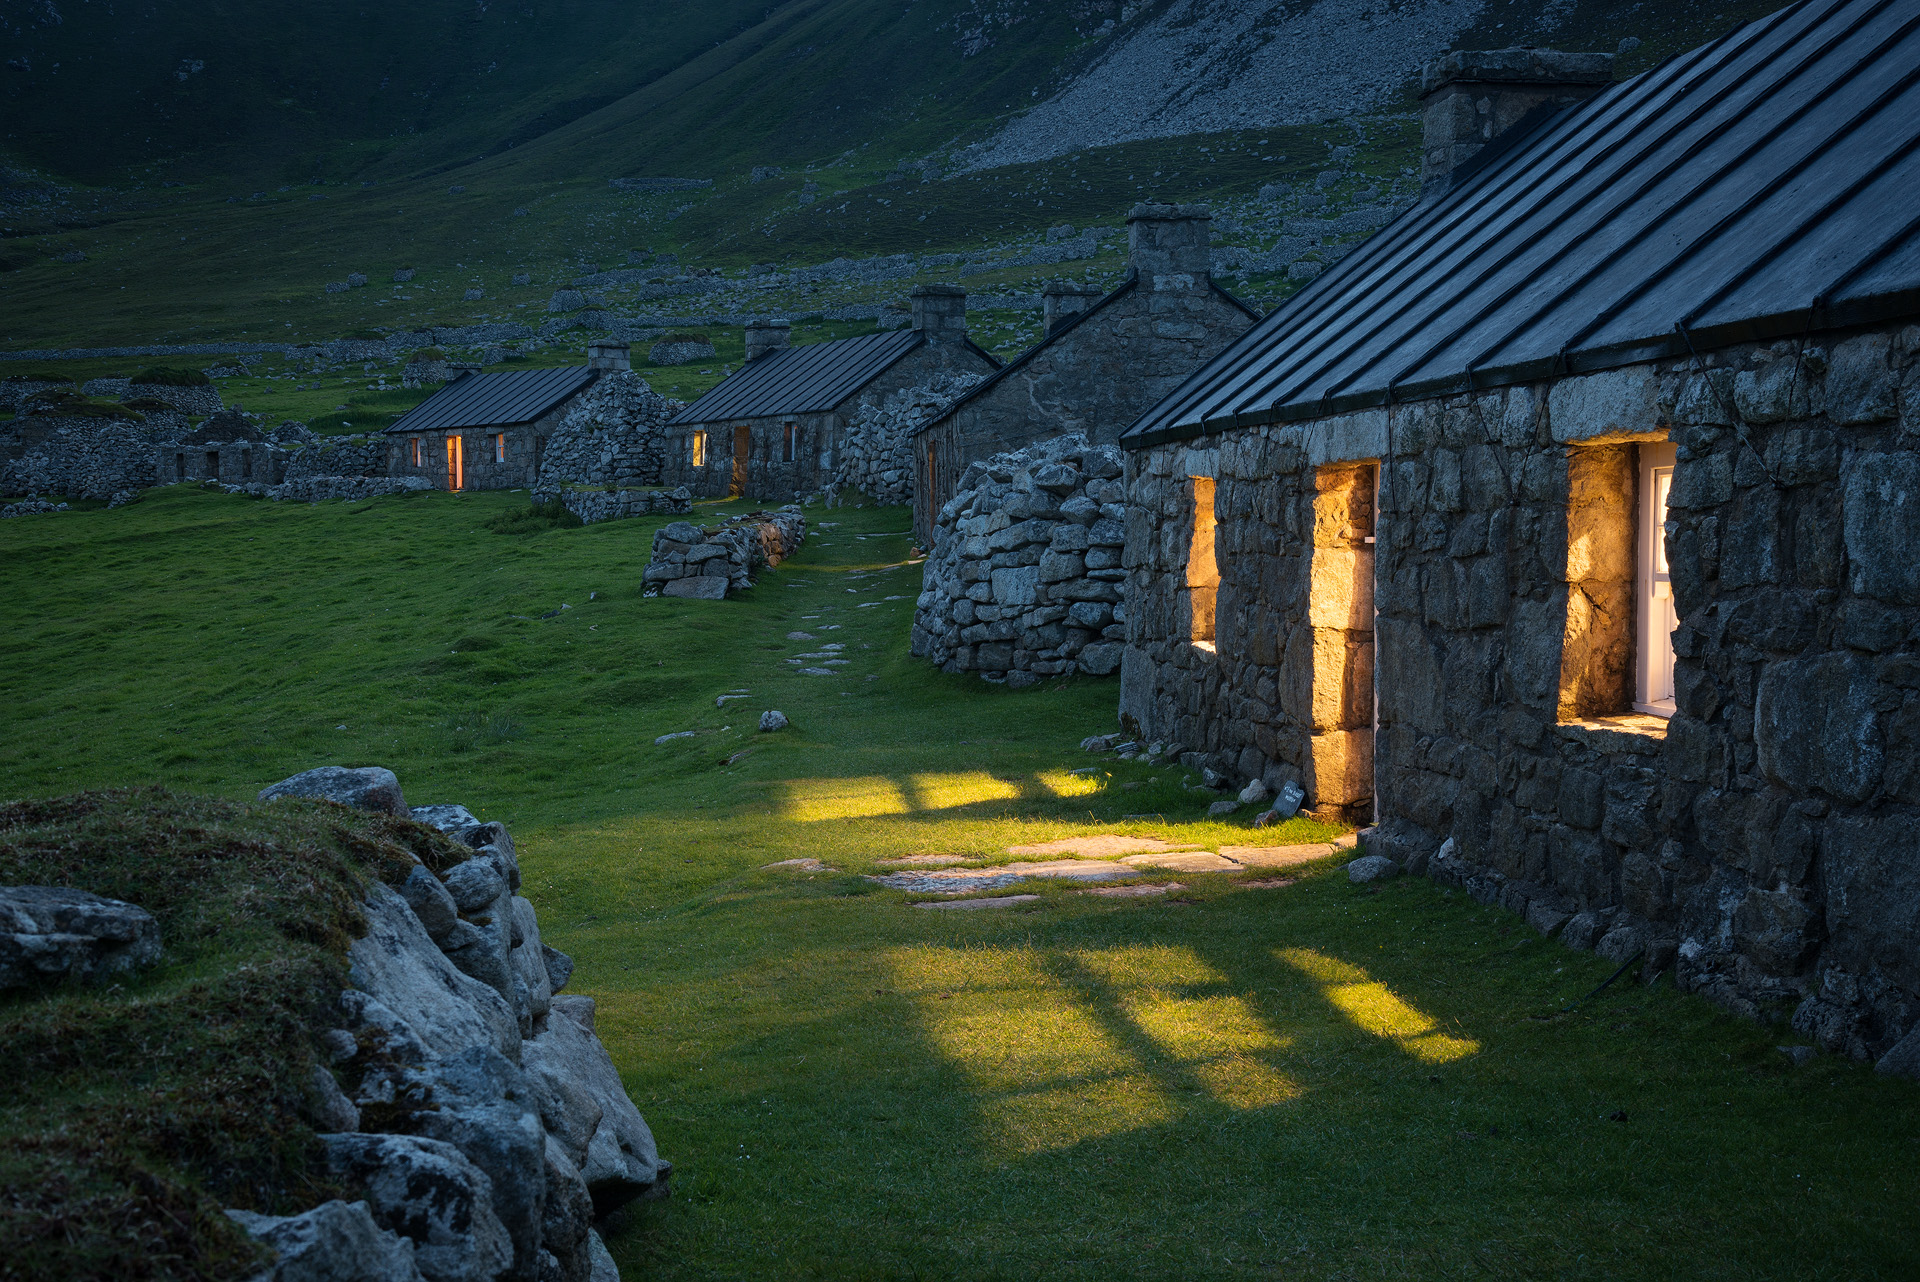 Time for bed, The village, Hirta, St. Kilda